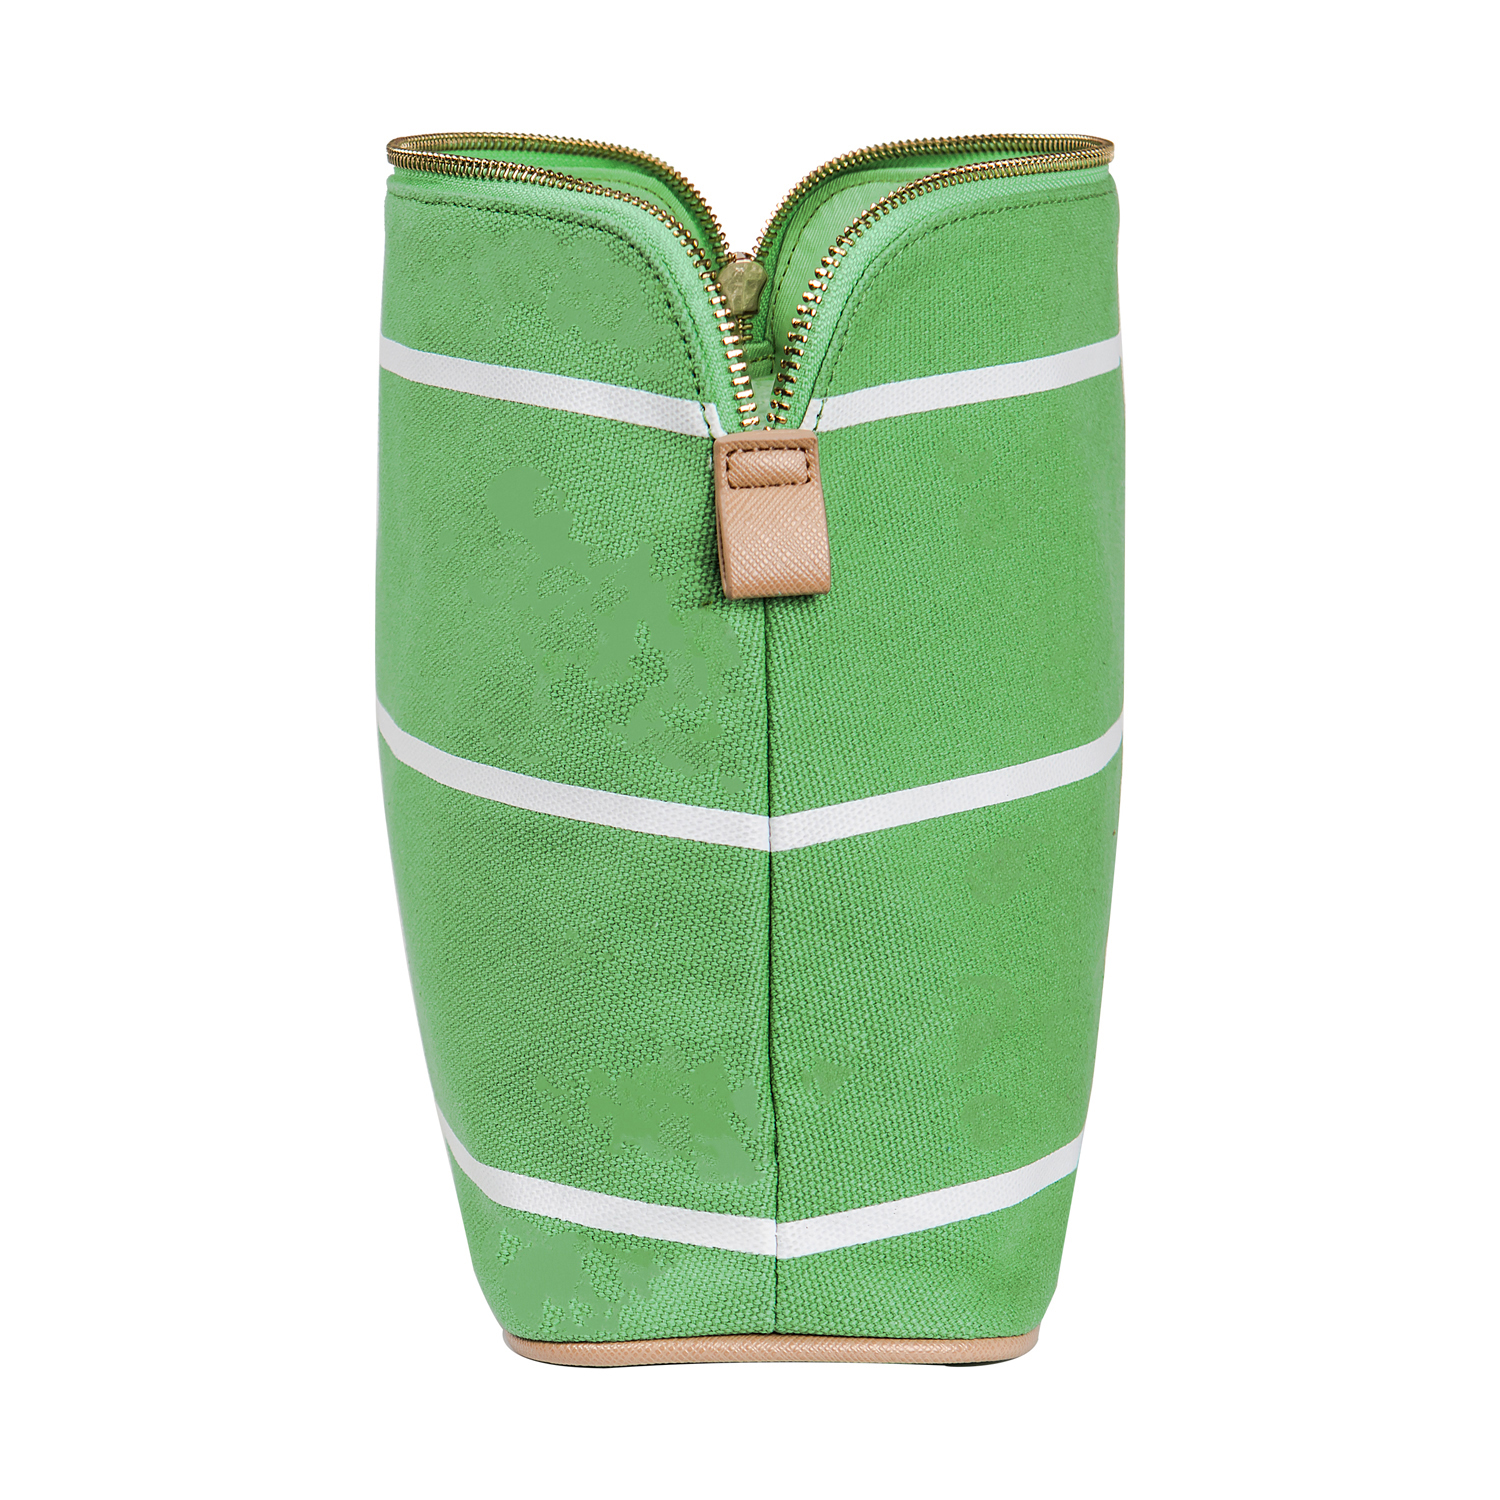 Cathy's Concepts Green Striped Cosmetic Bag